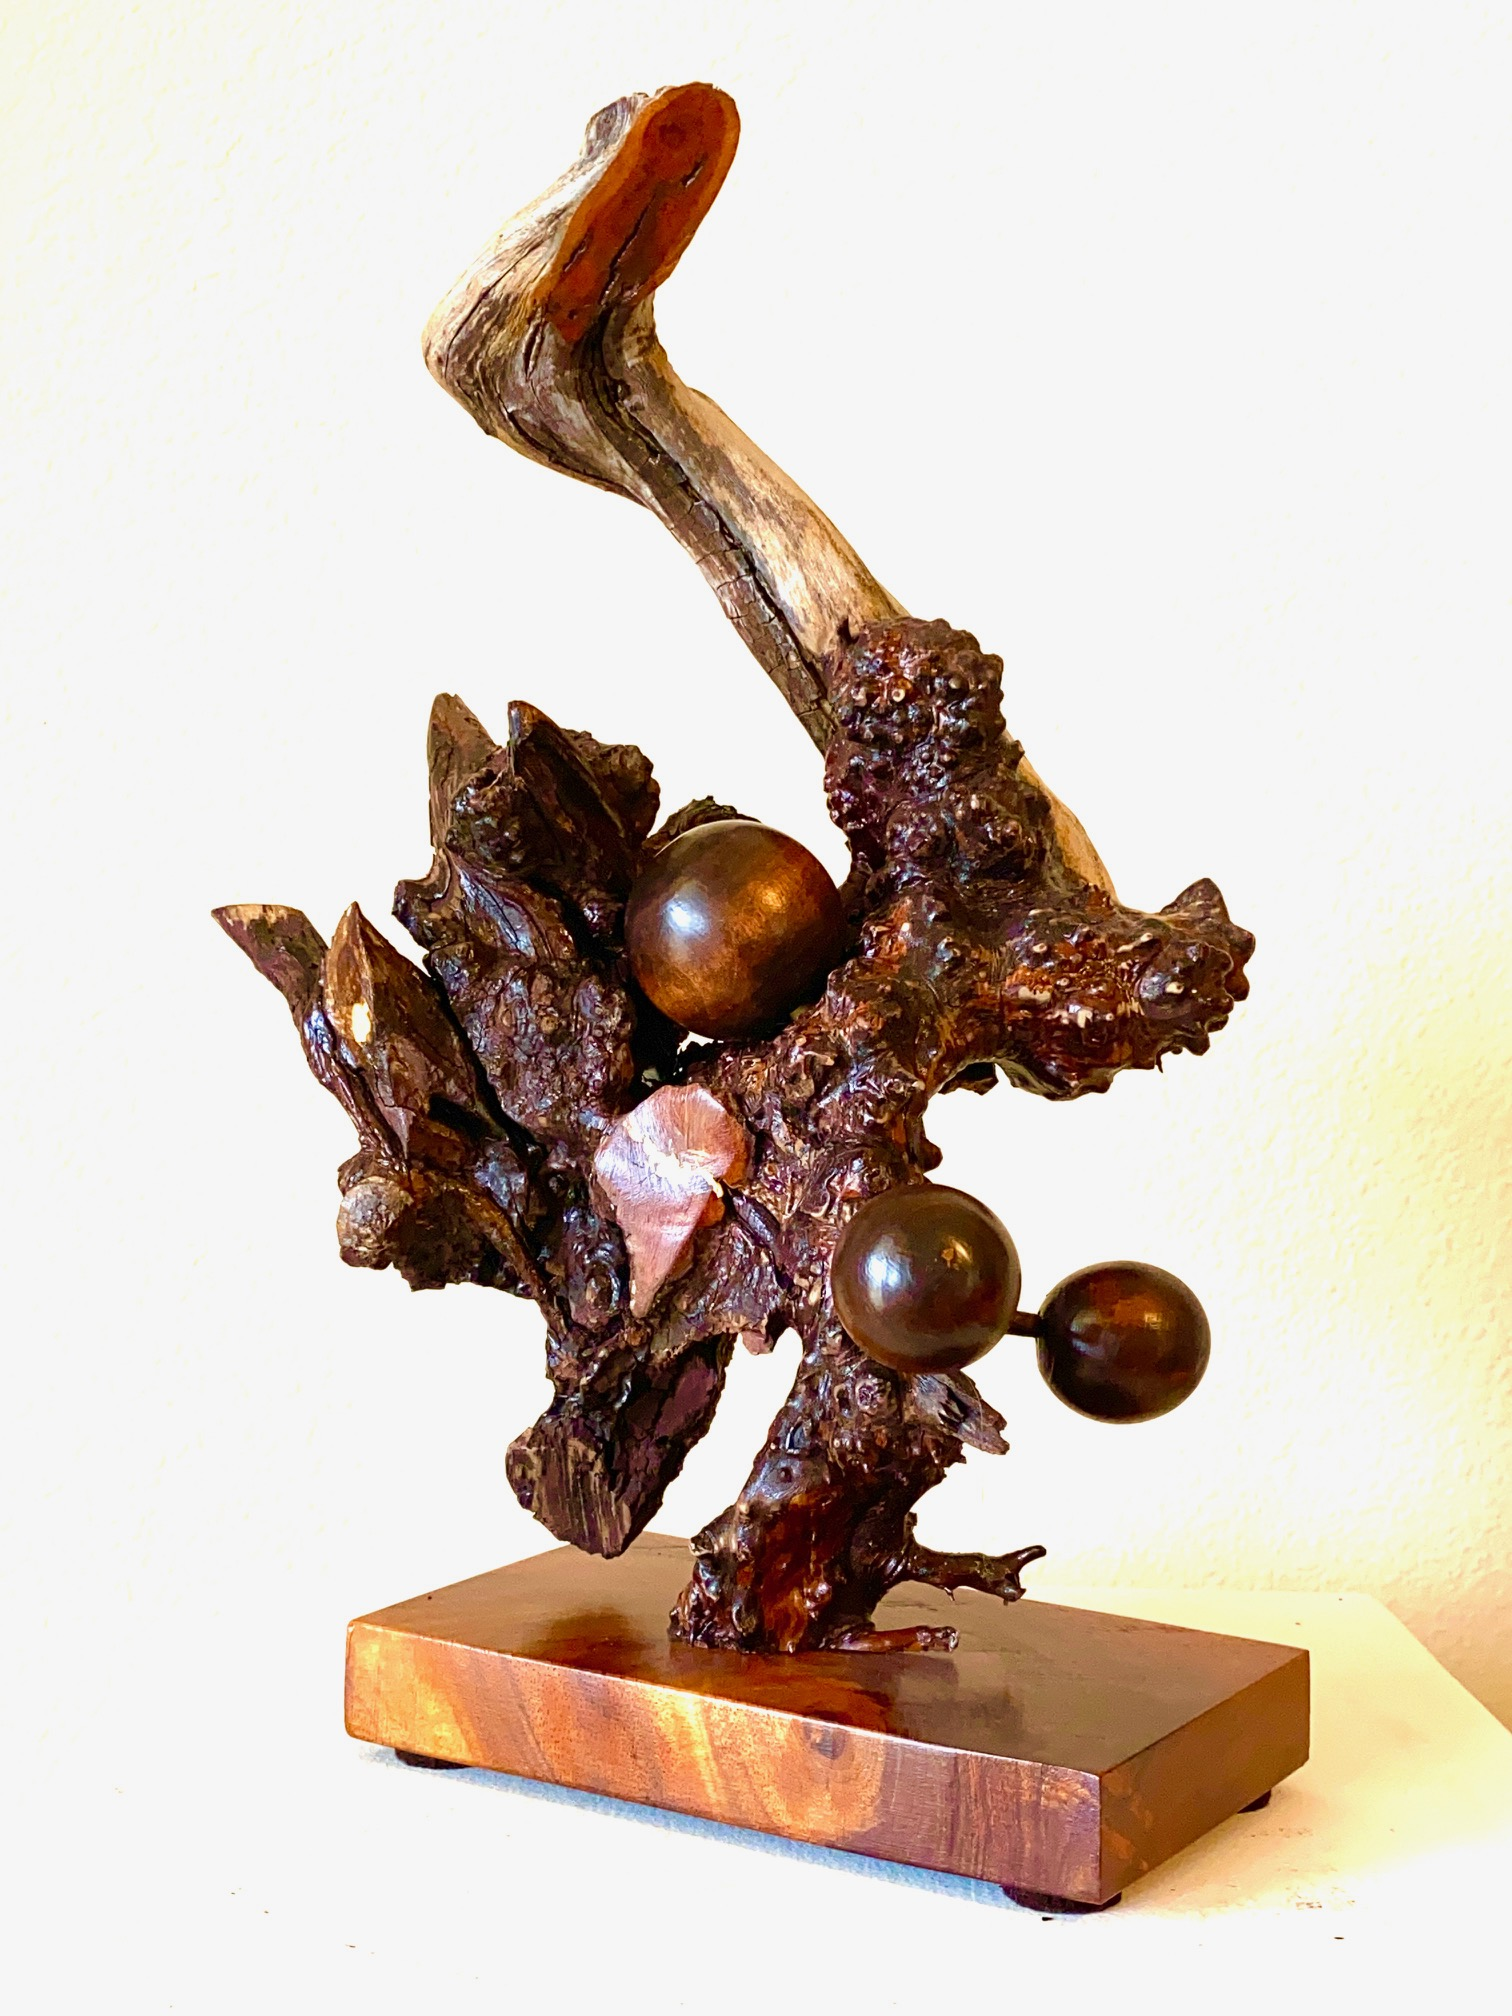 Enchanted Forest-sculpture copyright Scott Bruckner